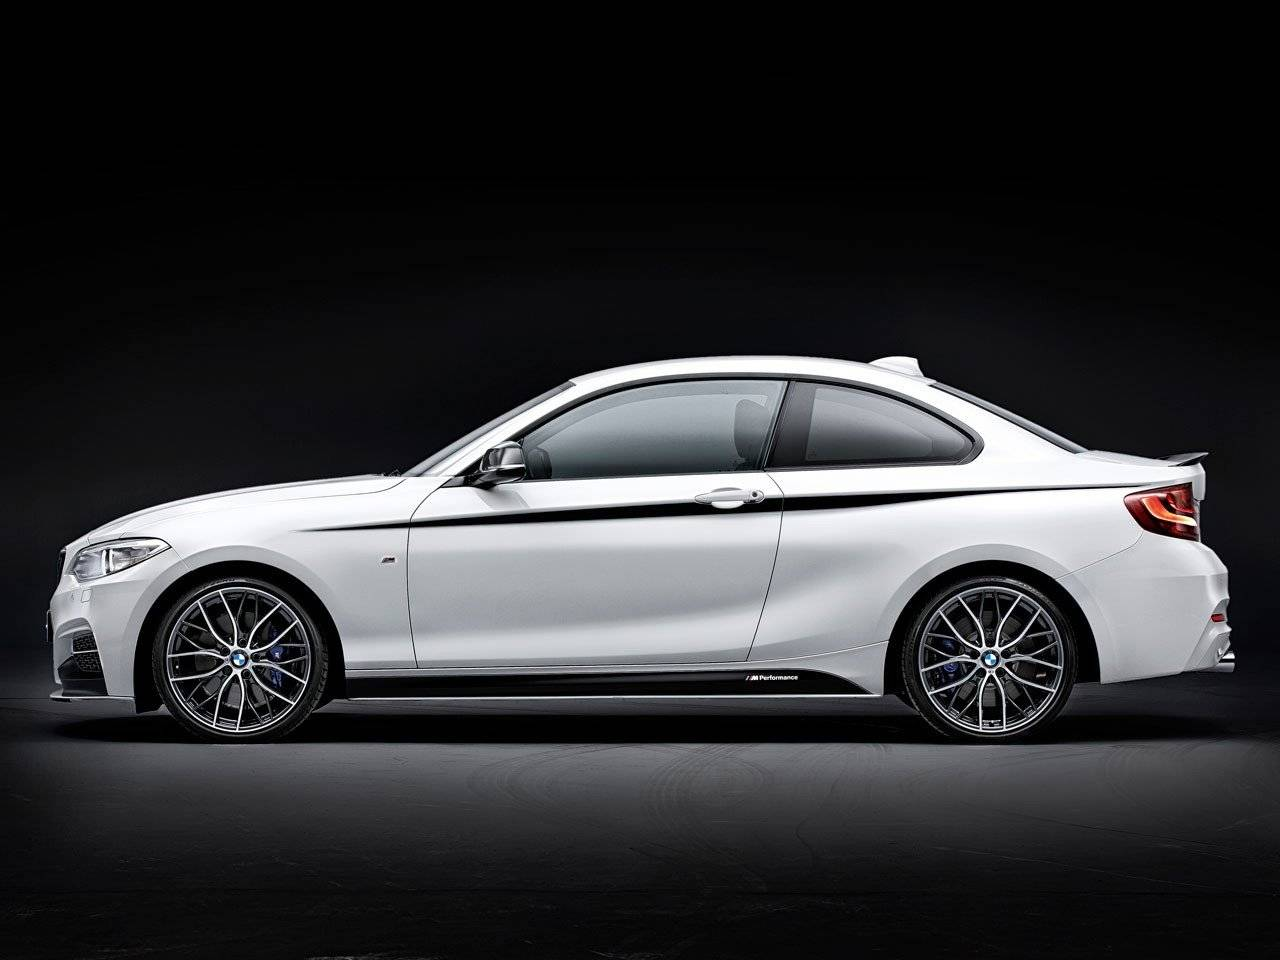 bmw 2 serie coup met m performance opsmuk tuning. Black Bedroom Furniture Sets. Home Design Ideas